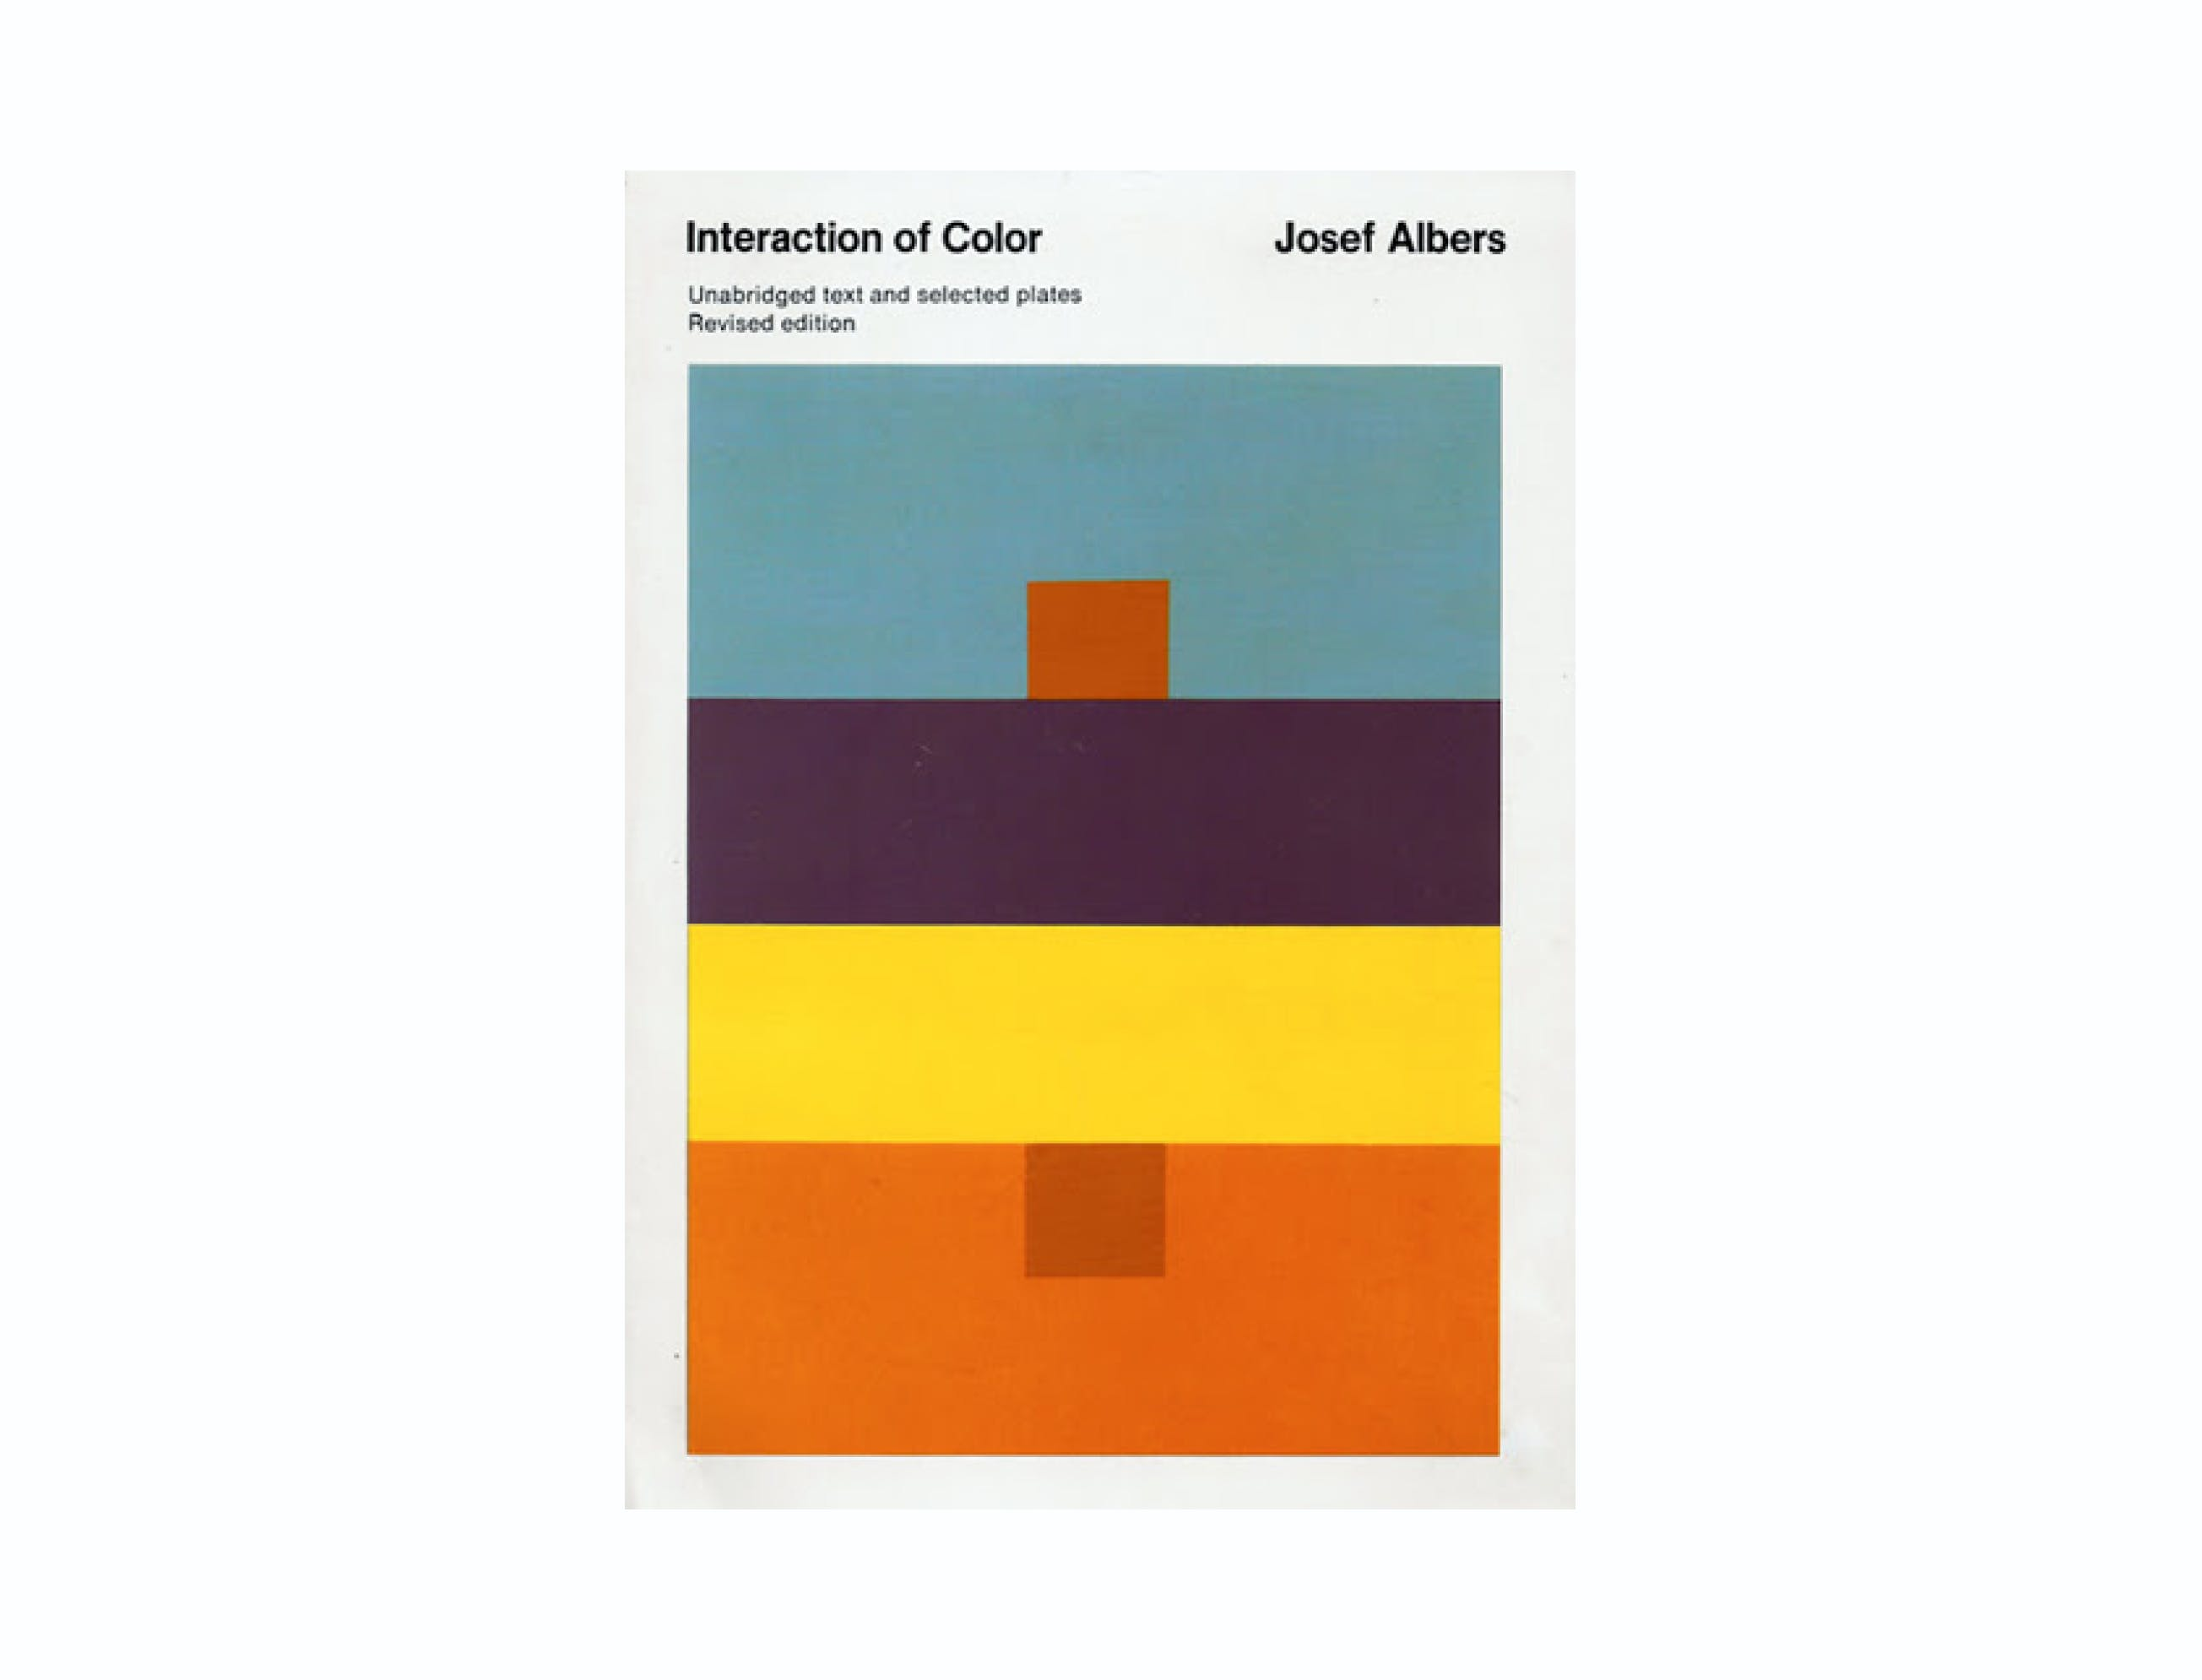 interaction of color book cover